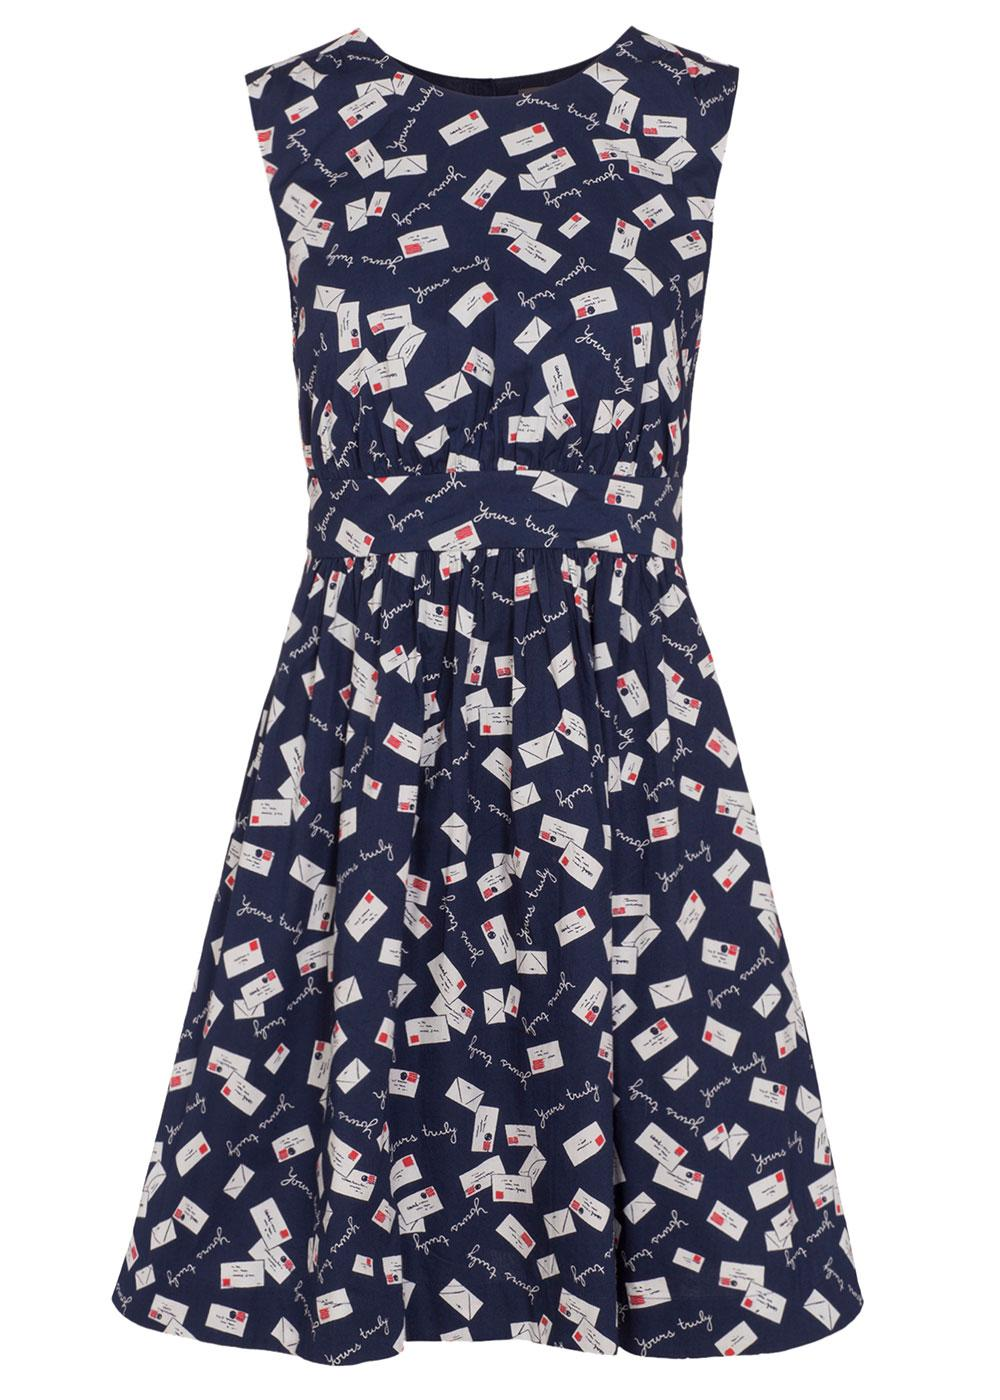 Lucy Yours Truly EMILY AND FIN Retro A-Line Dress